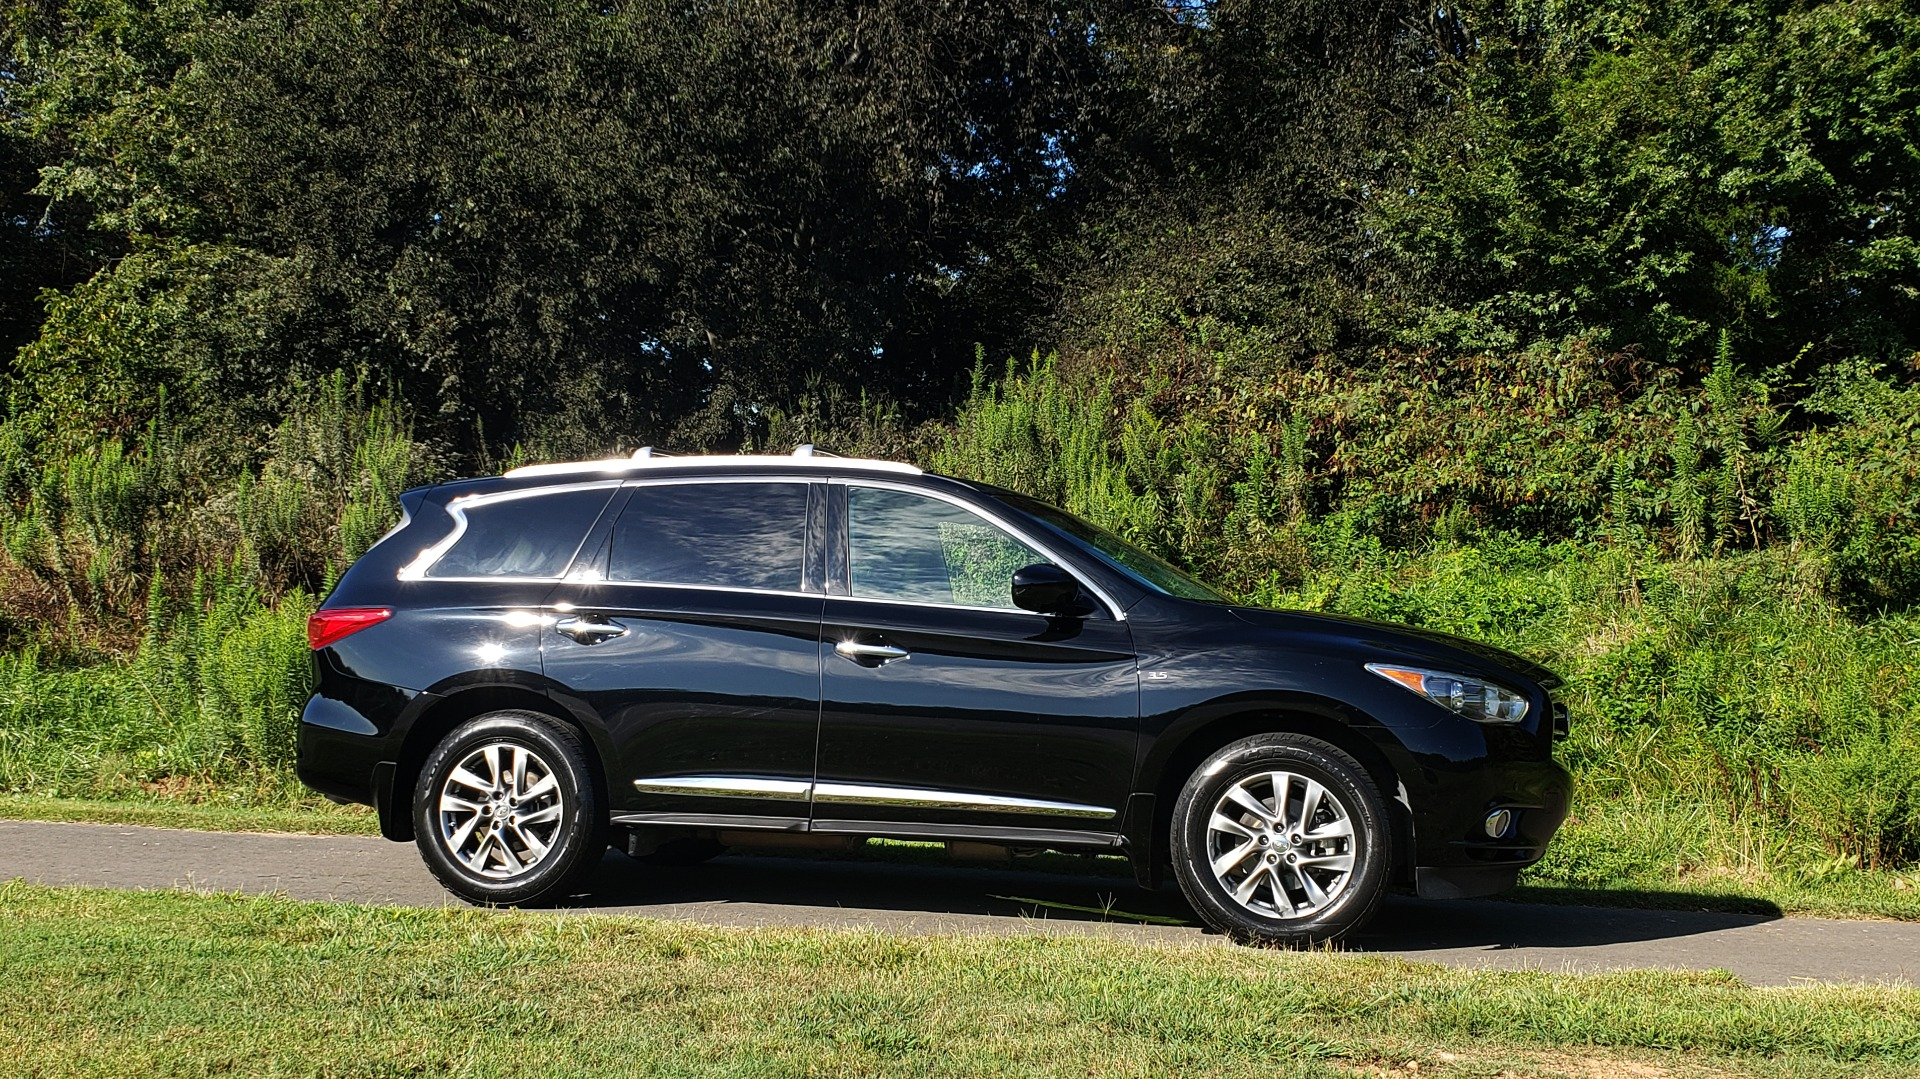 Used 2015 INFINITI QX60 AWD / PREM PLUS PKG / NAV / SUNROOF / BOSE / 3-ROW / REARVIEW for sale $19,695 at Formula Imports in Charlotte NC 28227 9